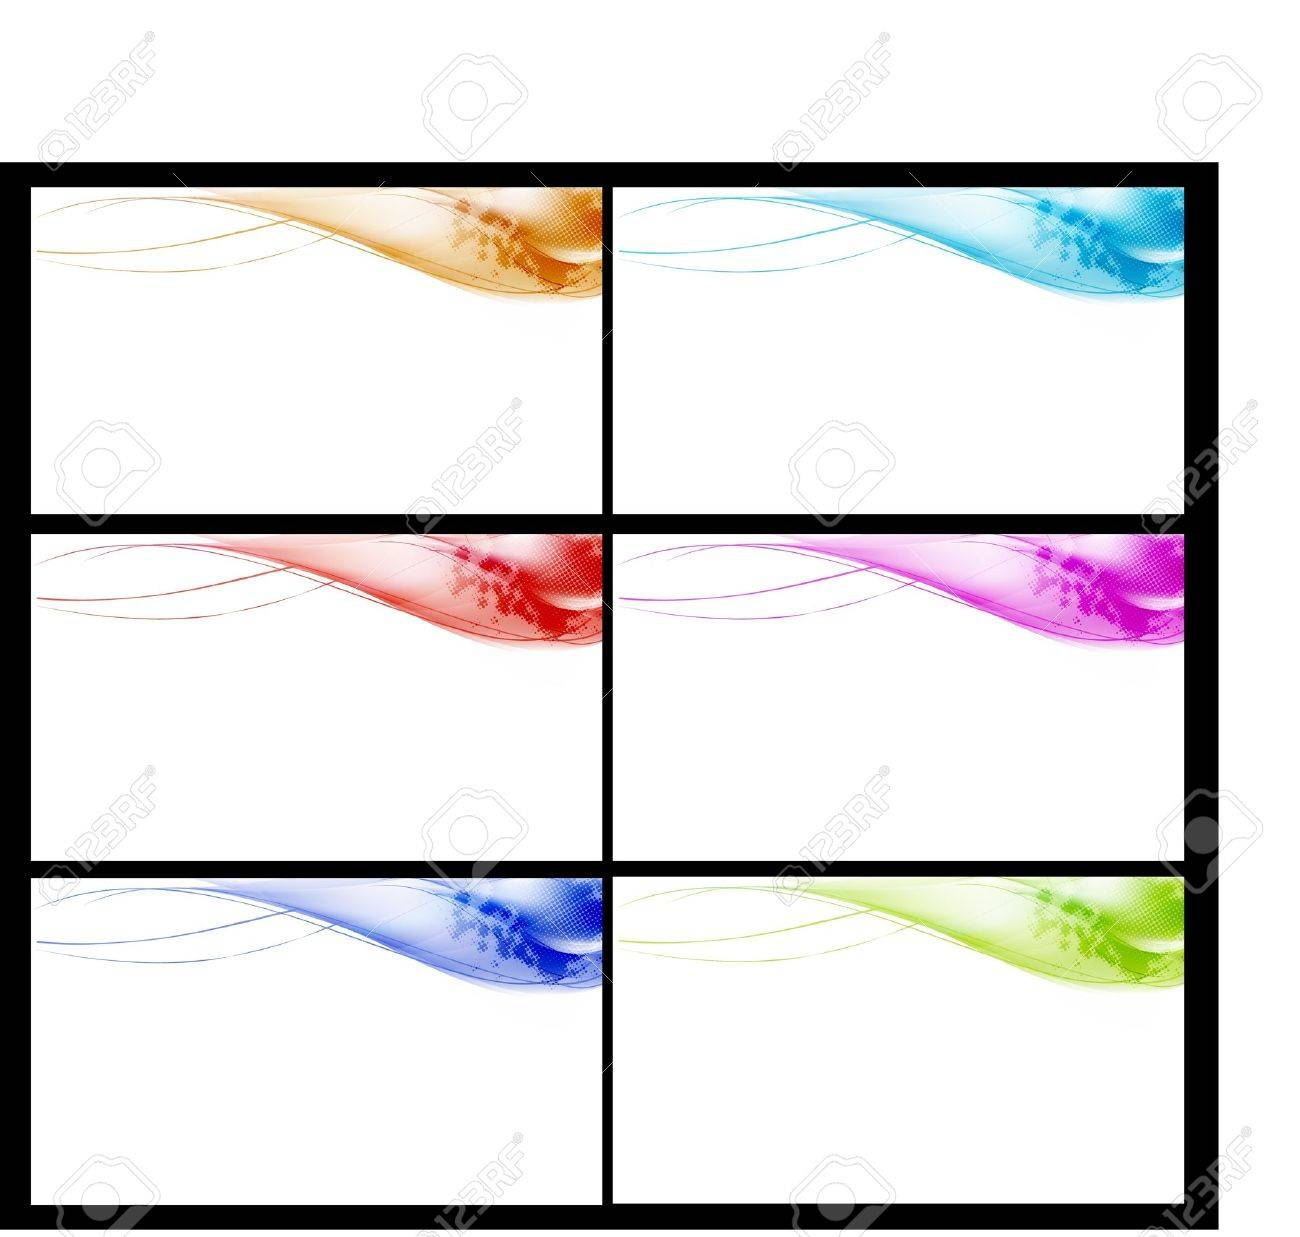 smooth banners or web site headers Stock Vector - 9474364